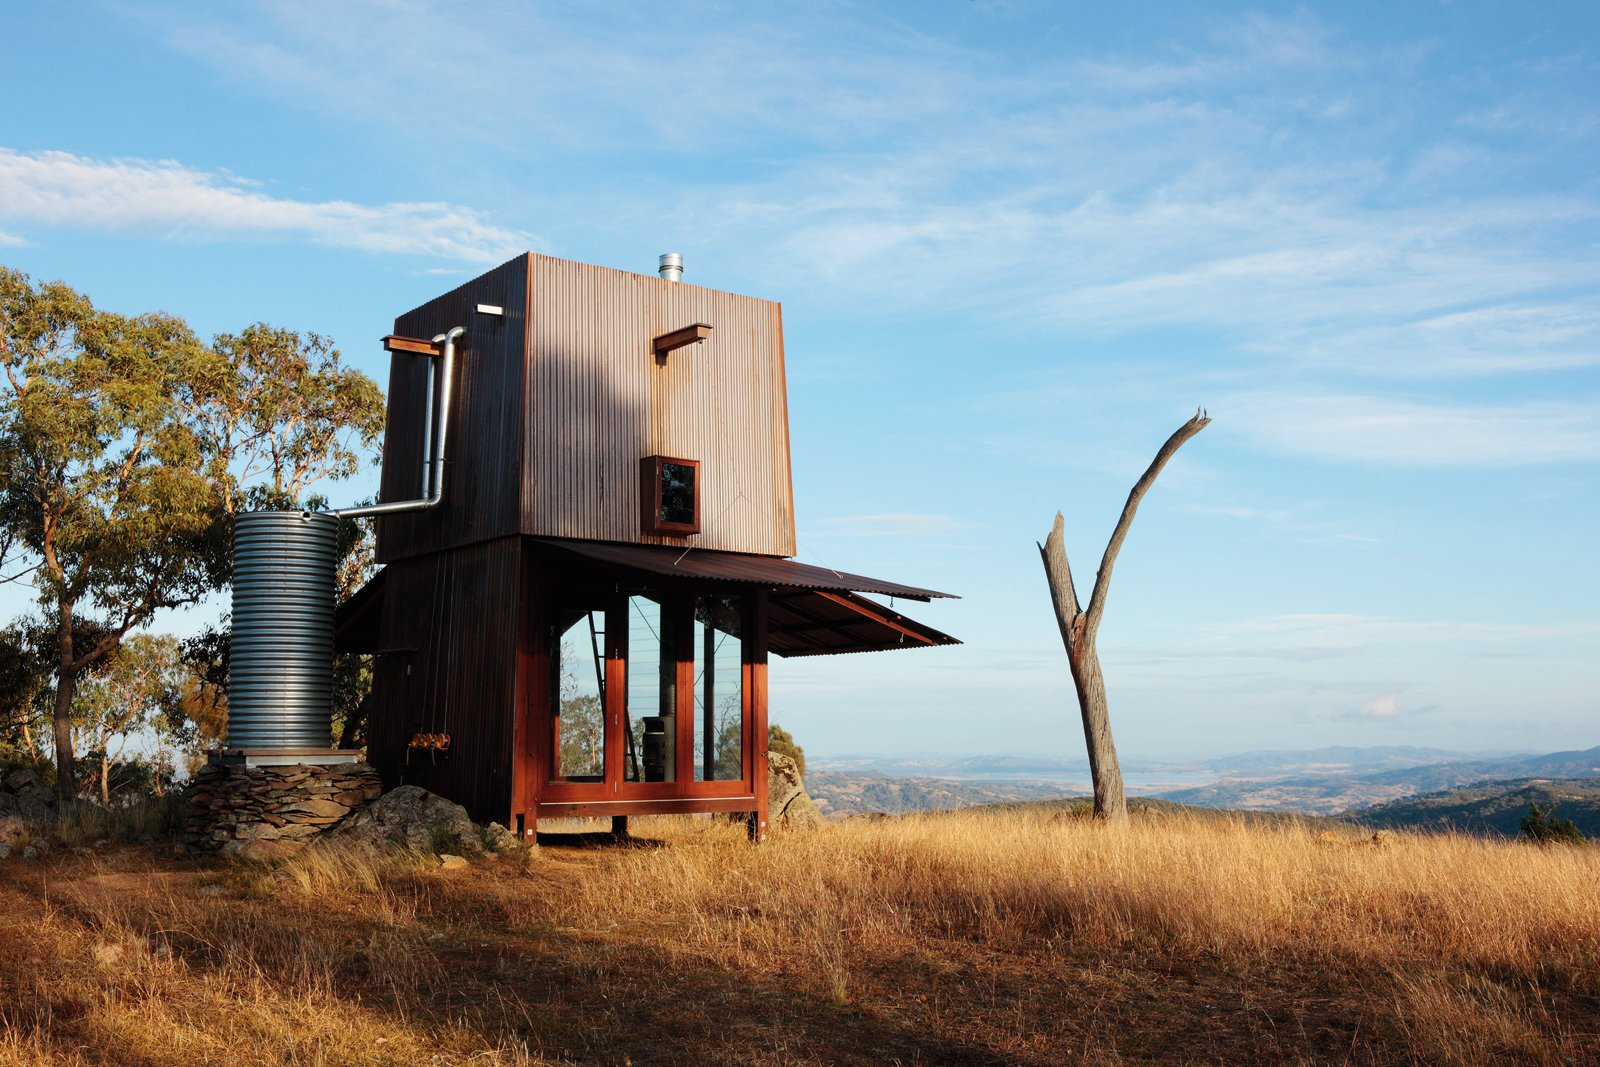 Rainwater is collected from the rooftop of the Permanent Camping! Mudgee abode by Casey Brown, NSW, Australia. Photo by Penny Clay  Cabin by DAVE MORIN from 100 Contemporary Green Buildings